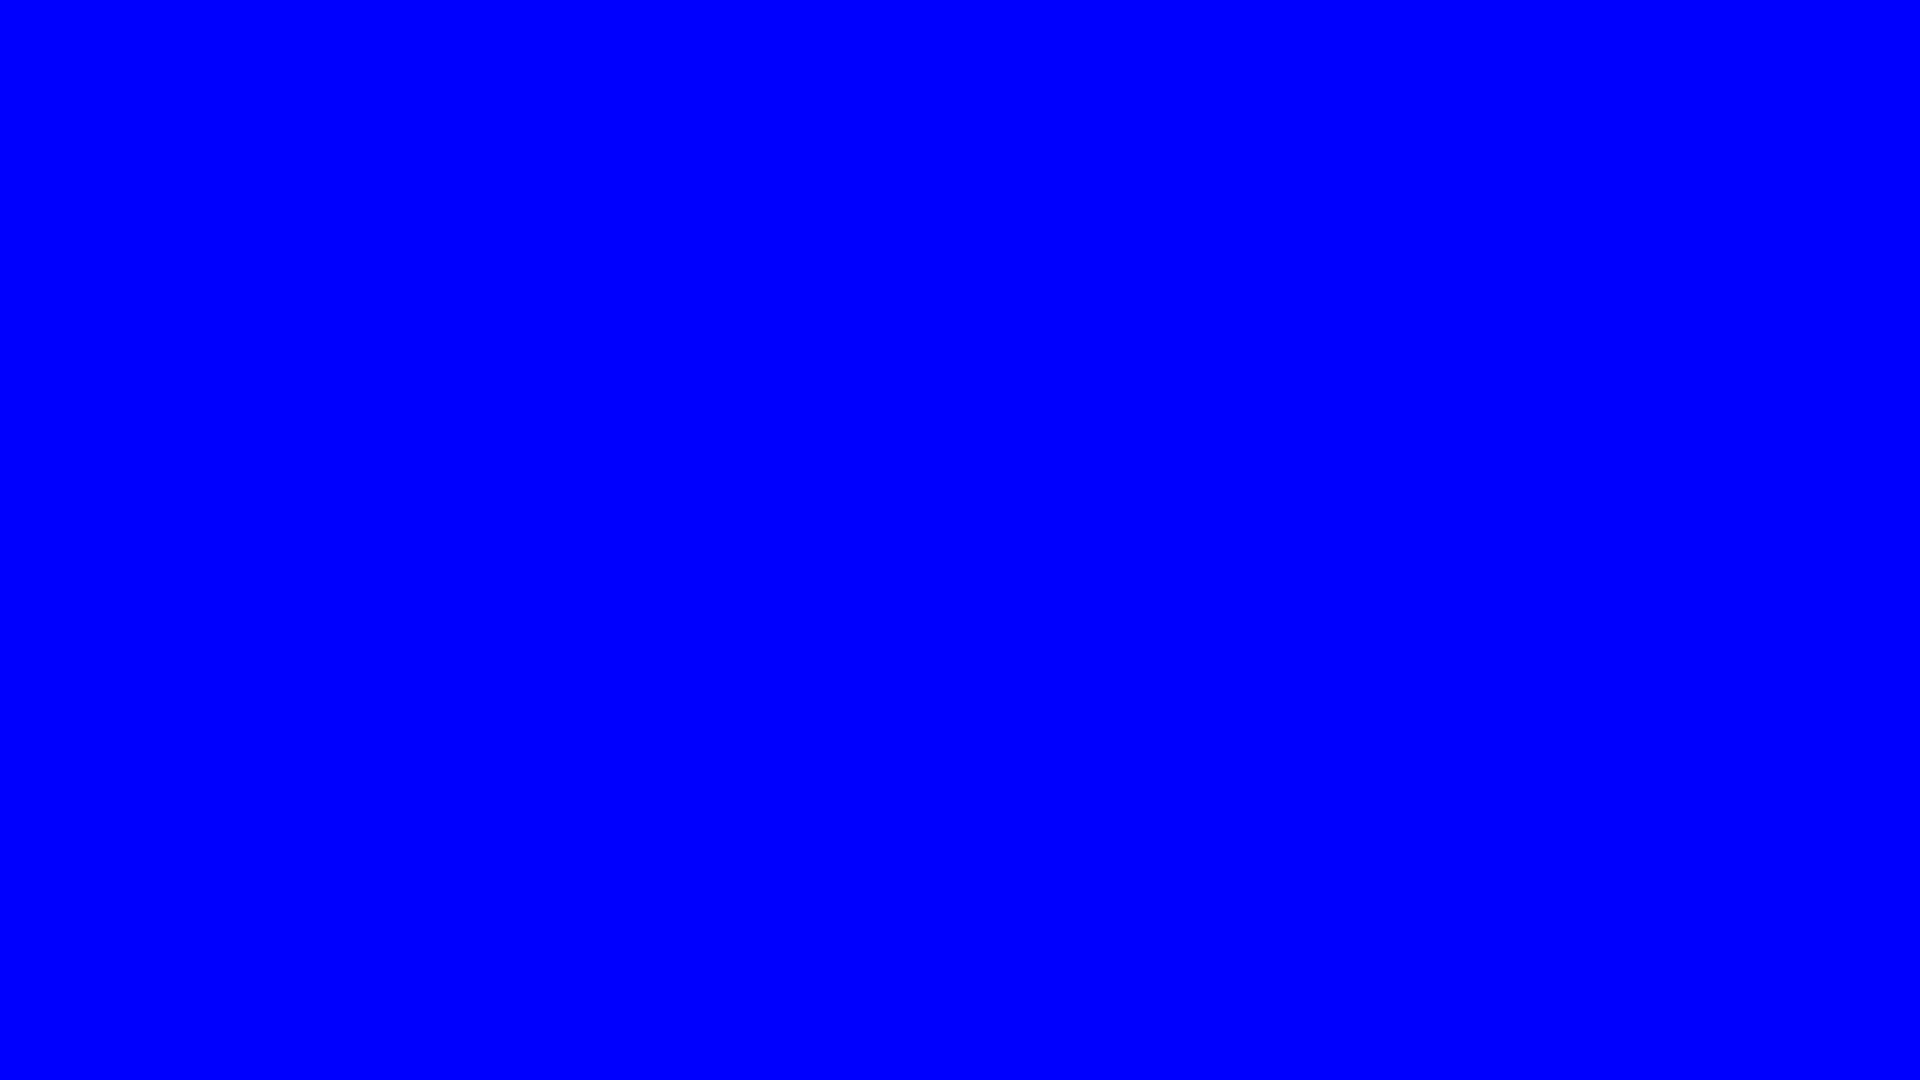 blue color - wallpaper, high definition, high quality, widescreen